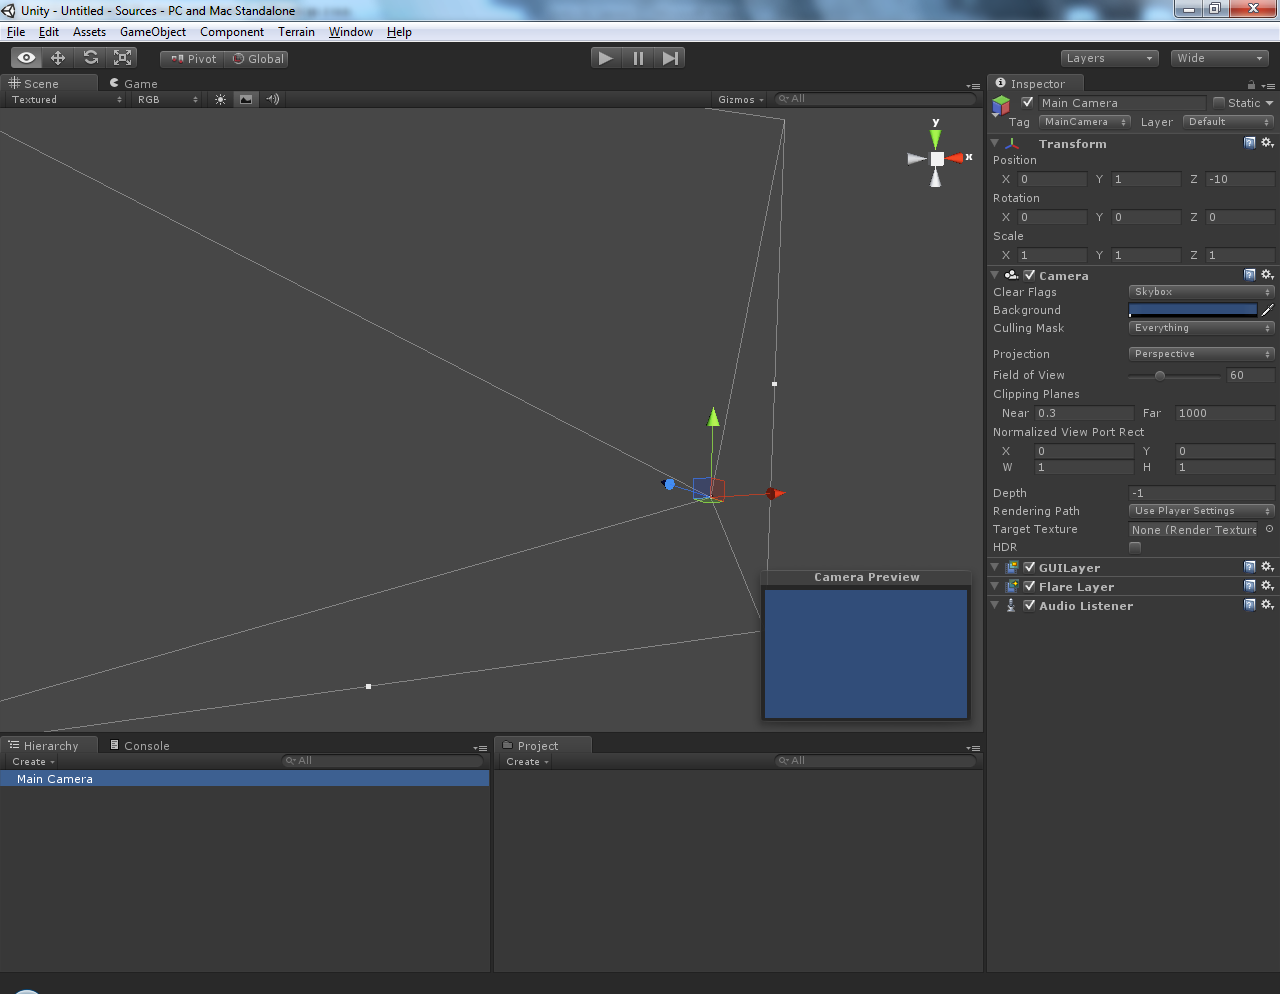 Practical use of Unity3d engine: Task #1: Rotate, pan and zoom